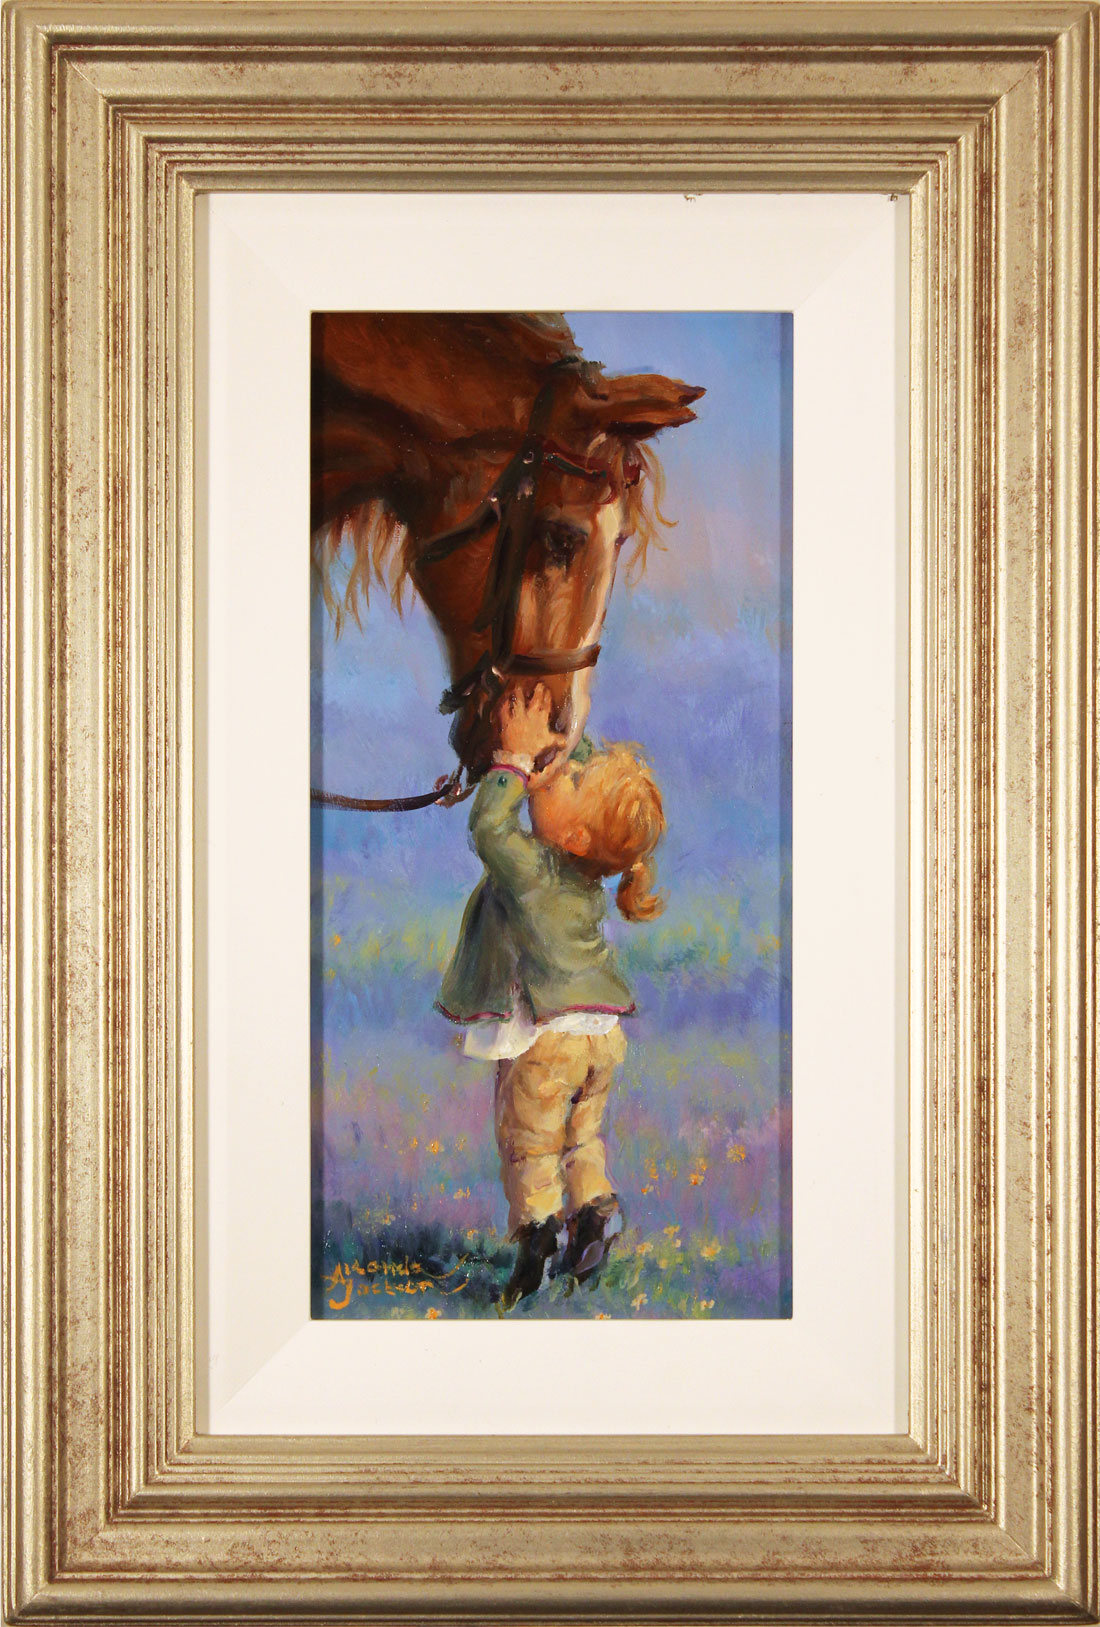 Amanda Jackson, Original oil painting on panel, Kisses for Cherry. Click to enlarge